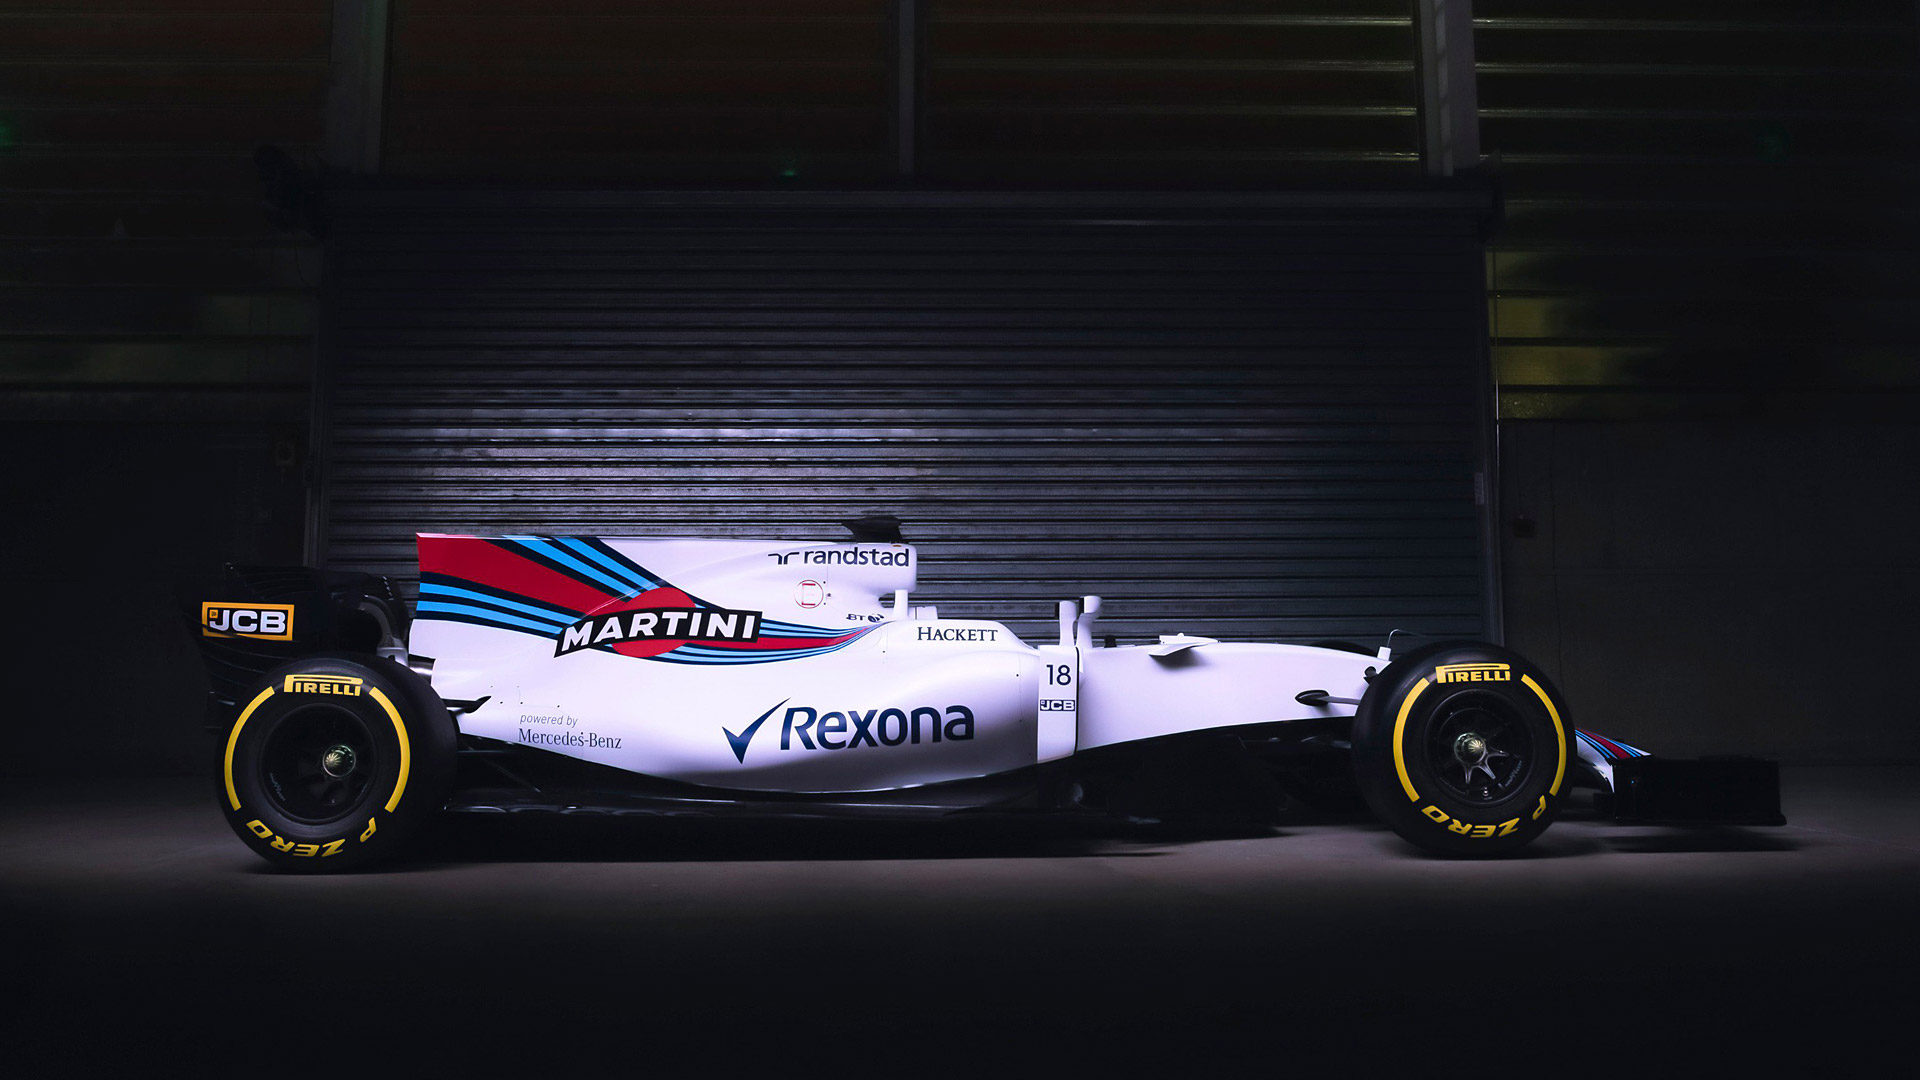 williams f team wallpaper 1920x1080